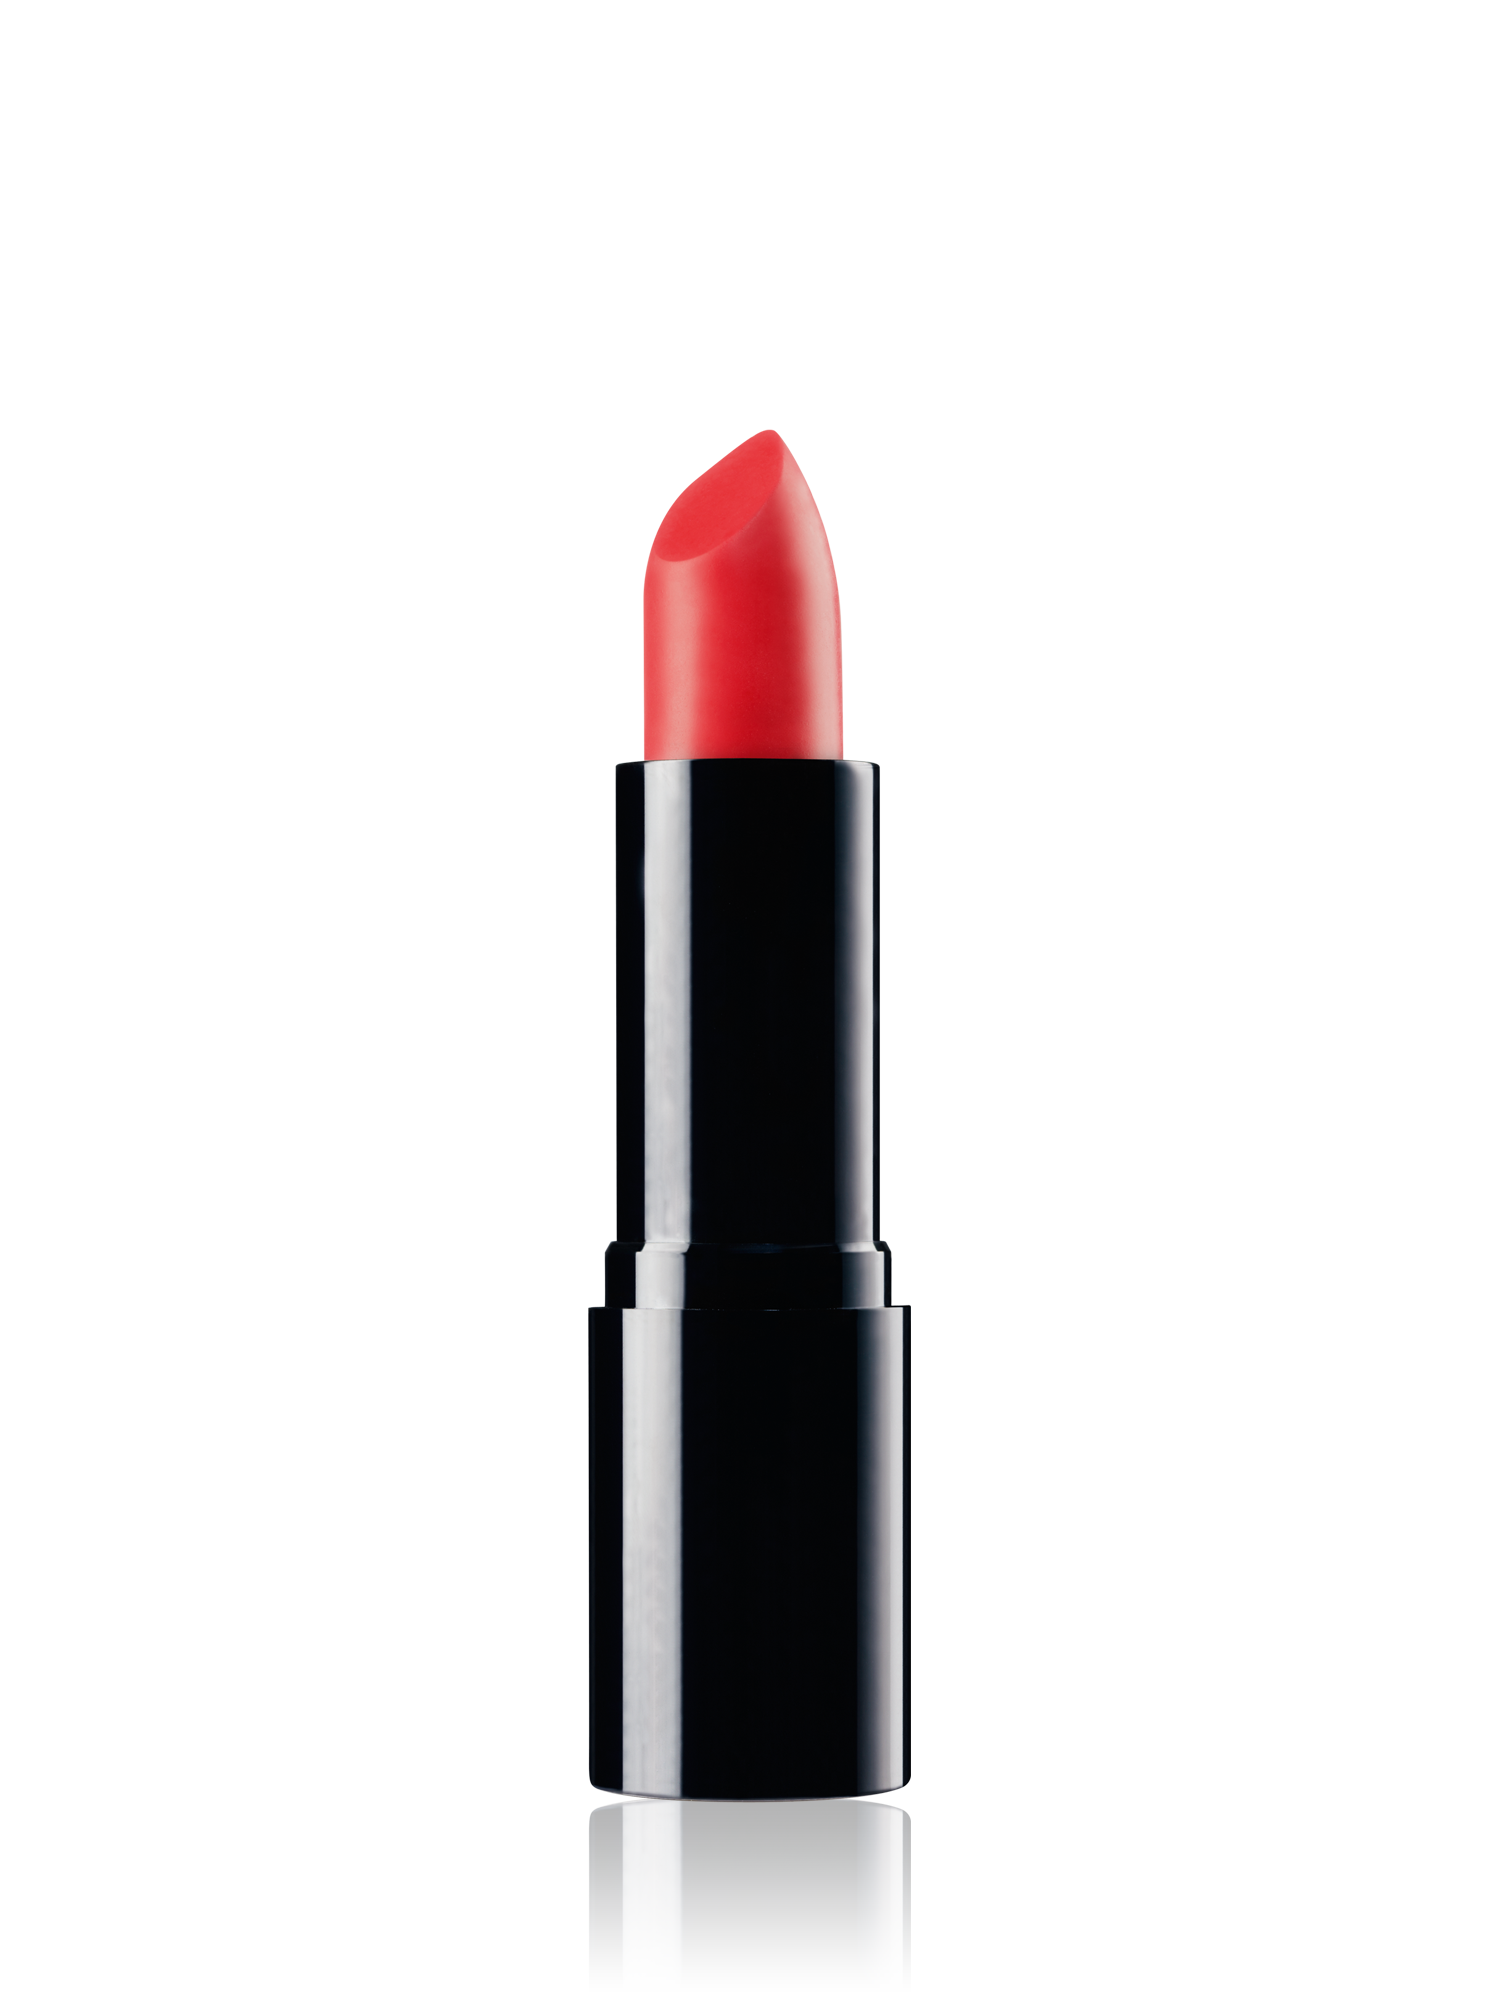 Lipstick clipart icon. Transparent png pictures free